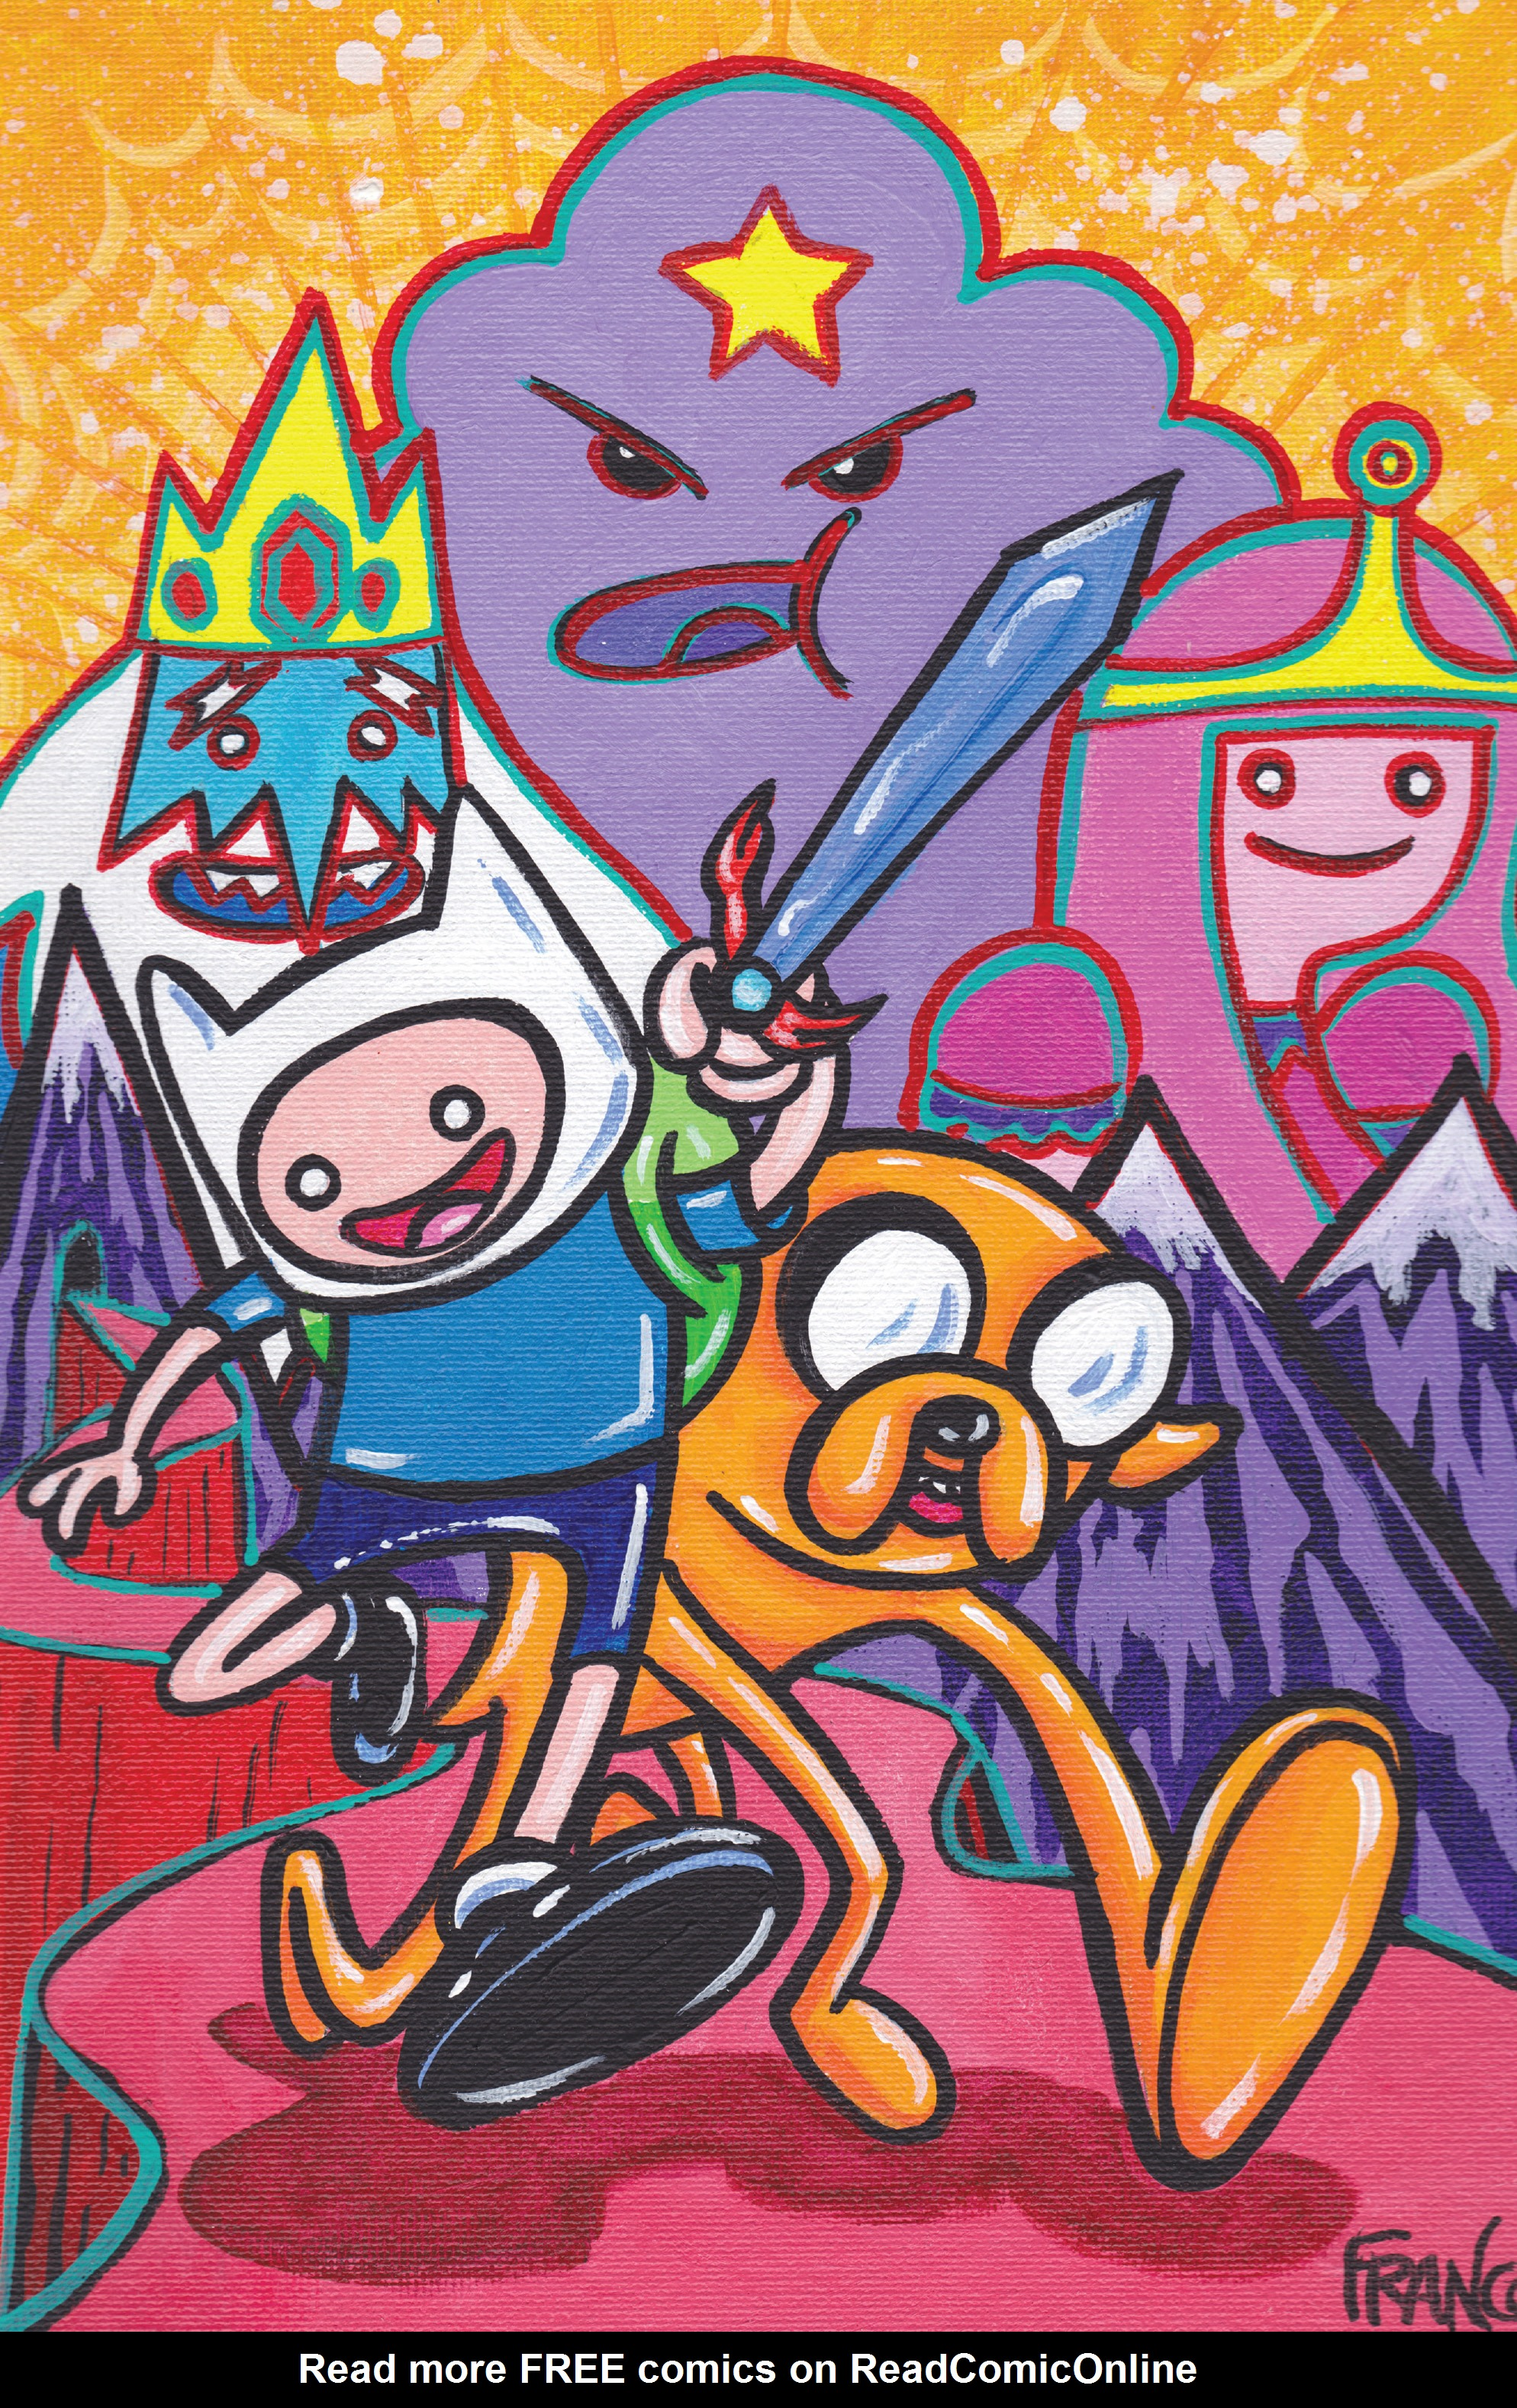 Read online Adventure Time comic -  Issue #7 - 4